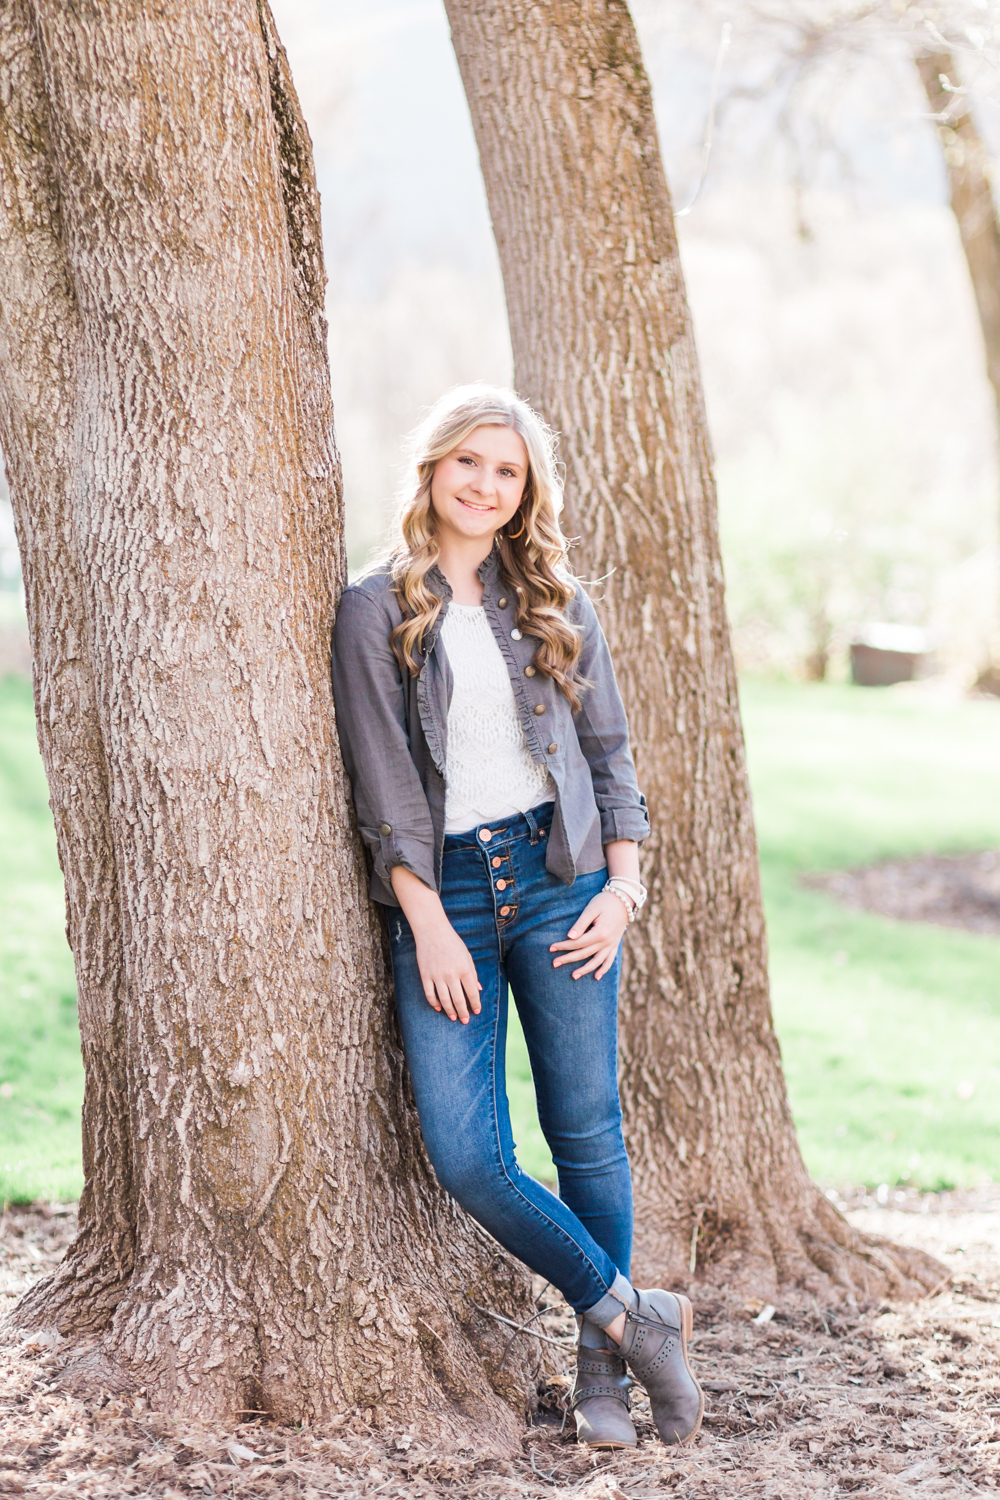 High-school-senior-pictures-whitney-bufton-photography-20.jpg